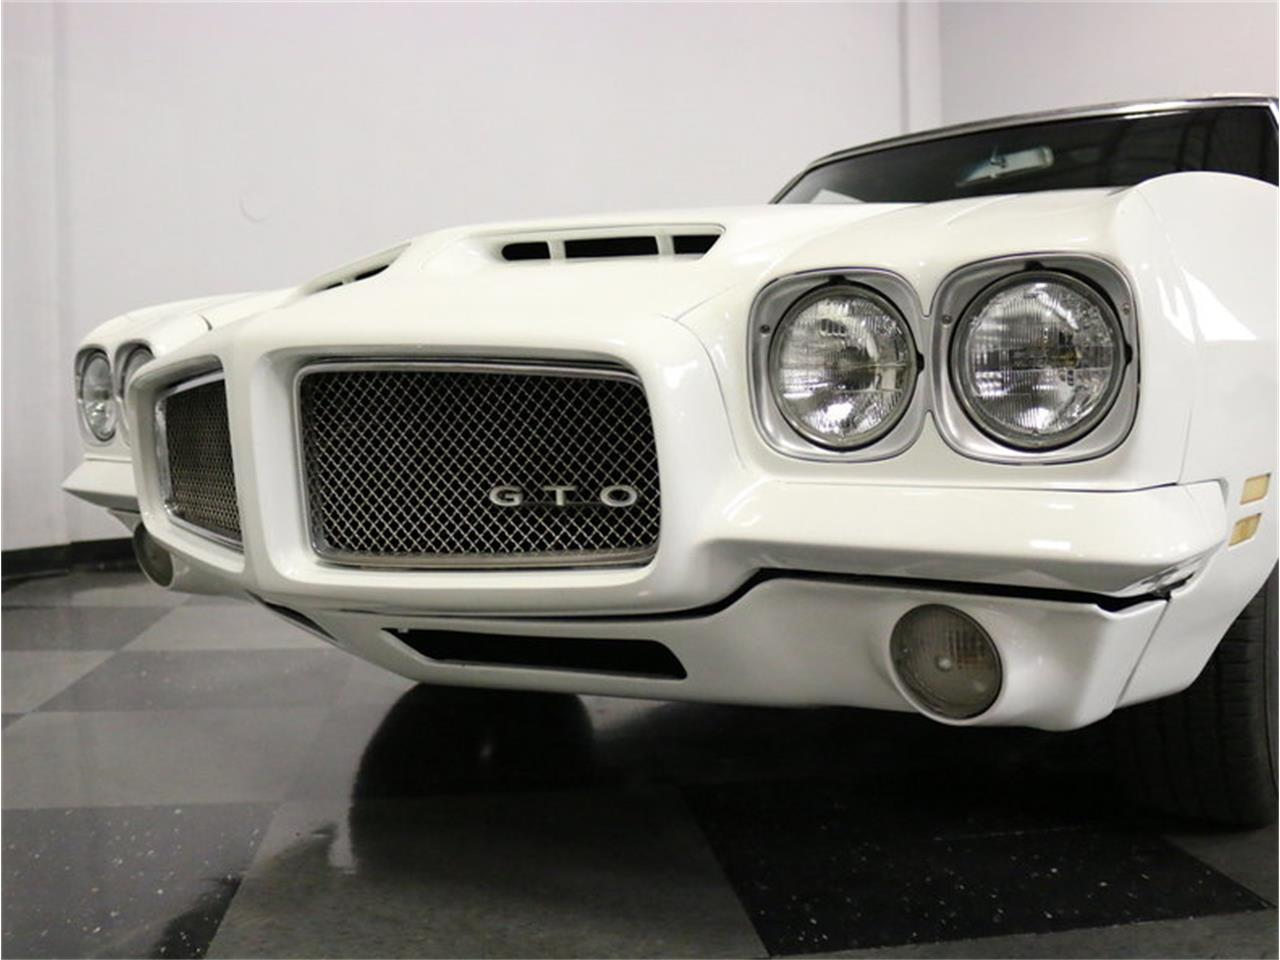 Large Picture of 1971 GTO located in Ft Worth Texas - $39,995.00 - MOBK